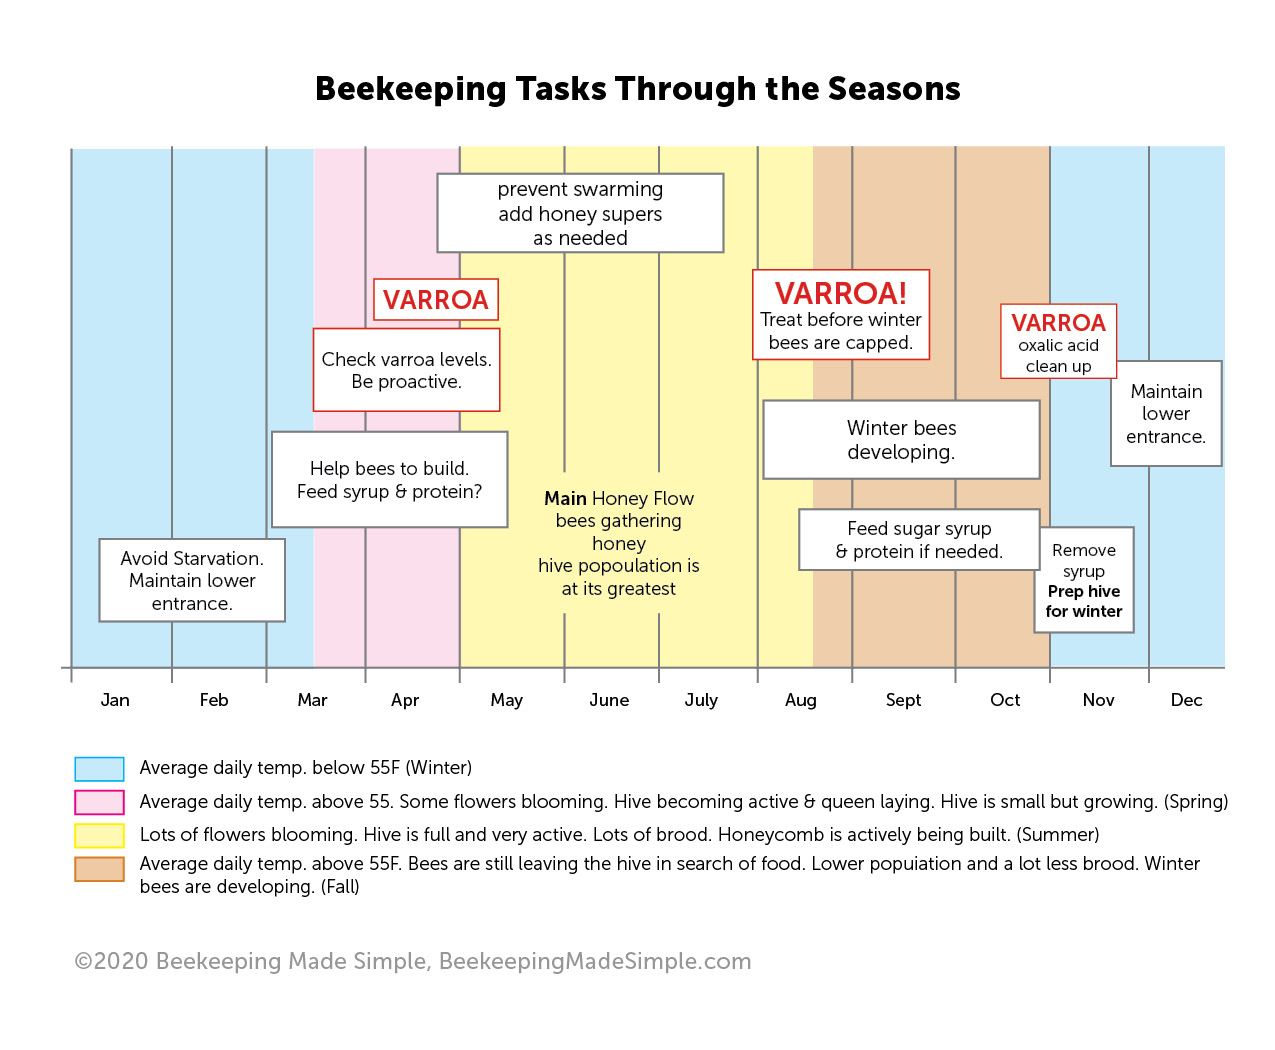 beekeeping tasks through the seasons free chart download